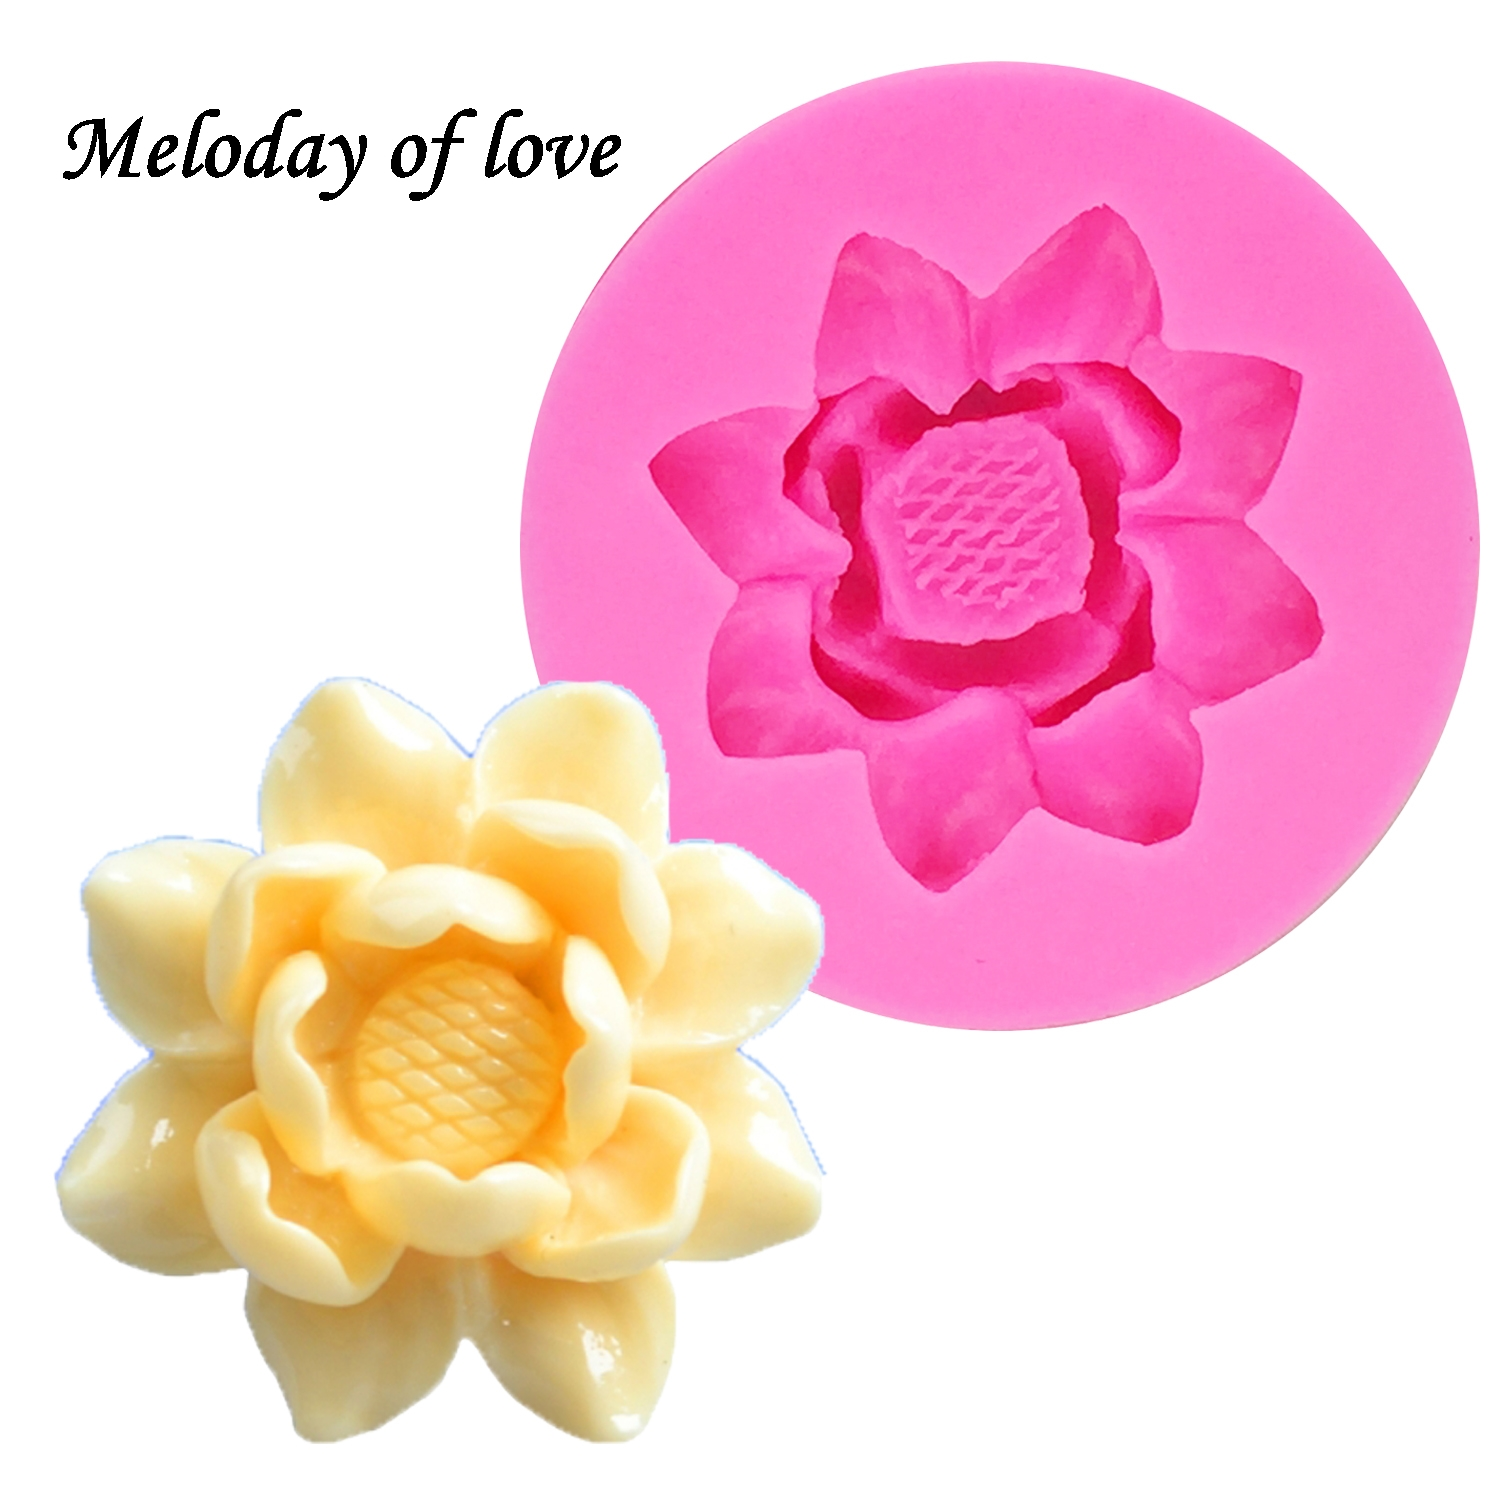 Conscientious 3d Flowers Chocolate Wedding Cake Decorating Tools Diy Fondant Silicone Mold Resin Clay Soap Mold Wholesale T0175 Pottery & Ceramics